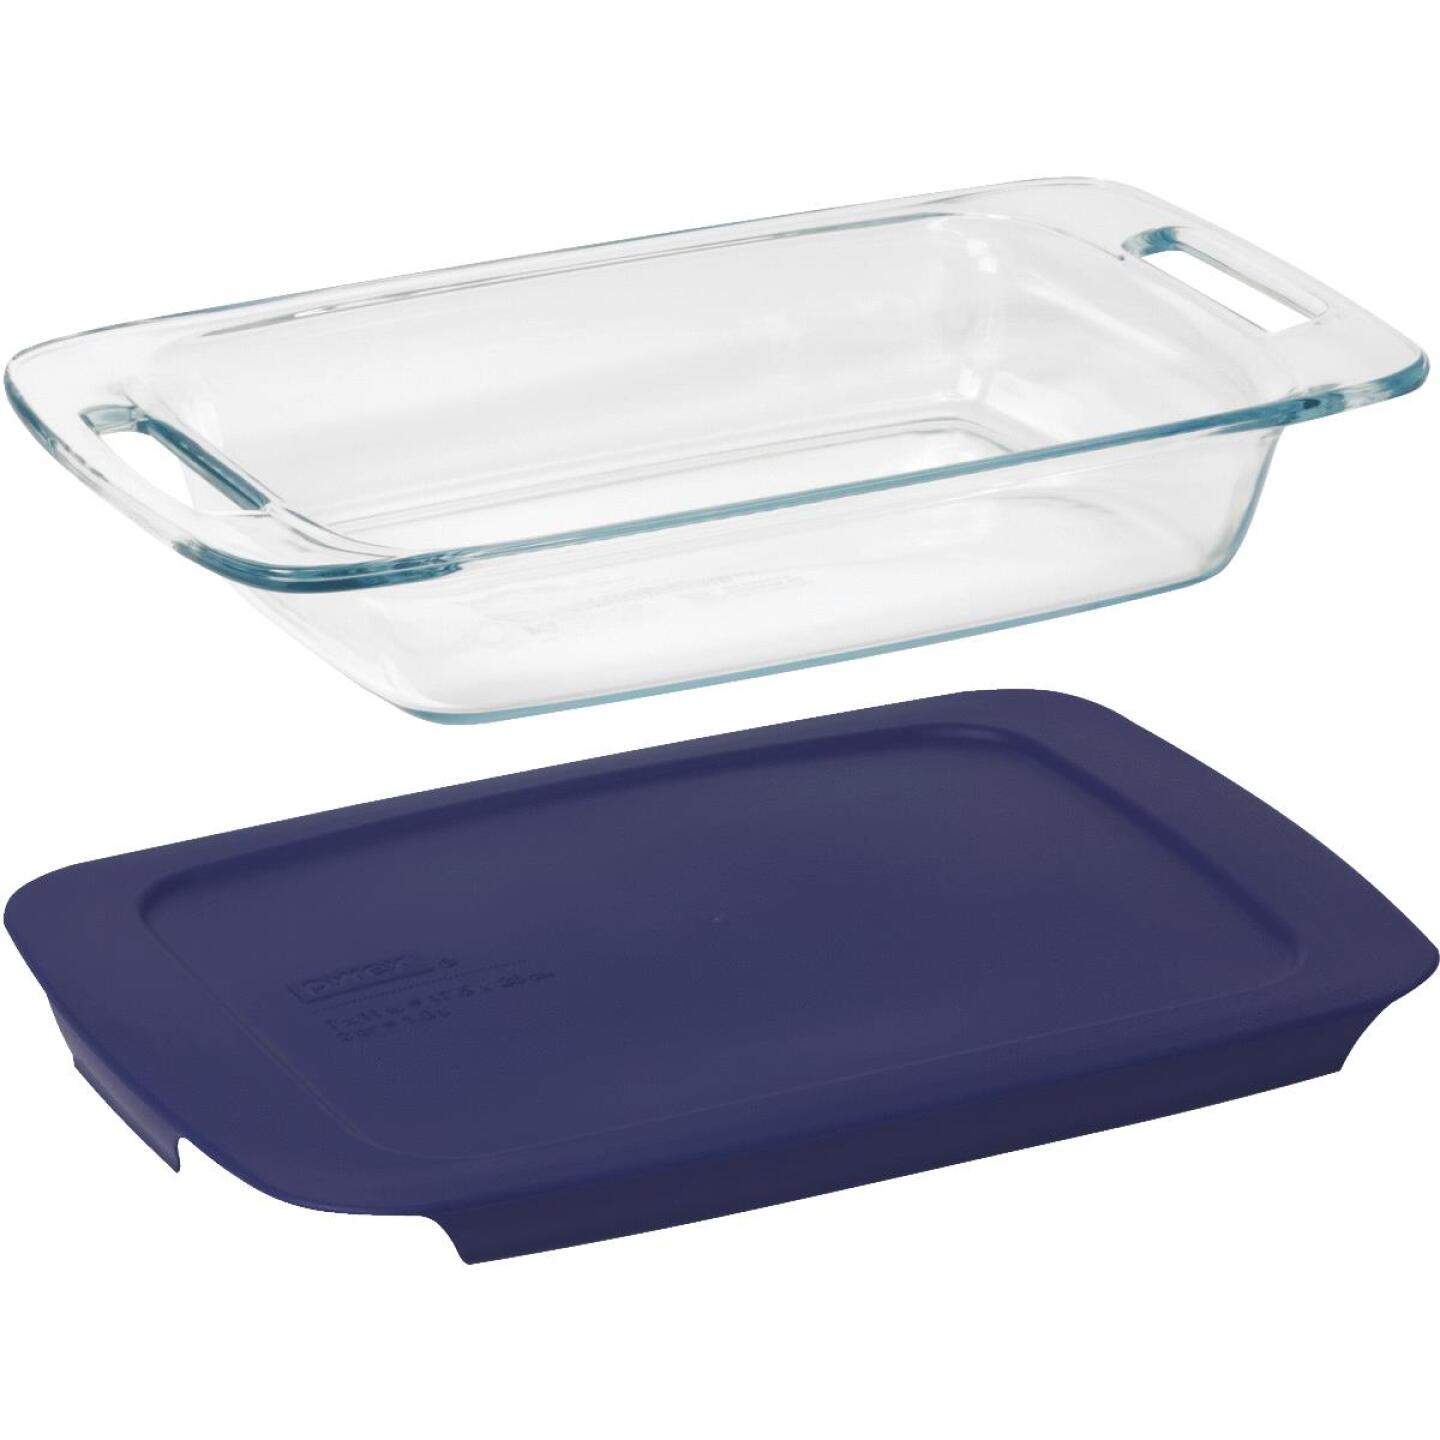 Pyrex Easy Grab 2 Qt. Glass Oblong Baking Dish with Lid Image 2